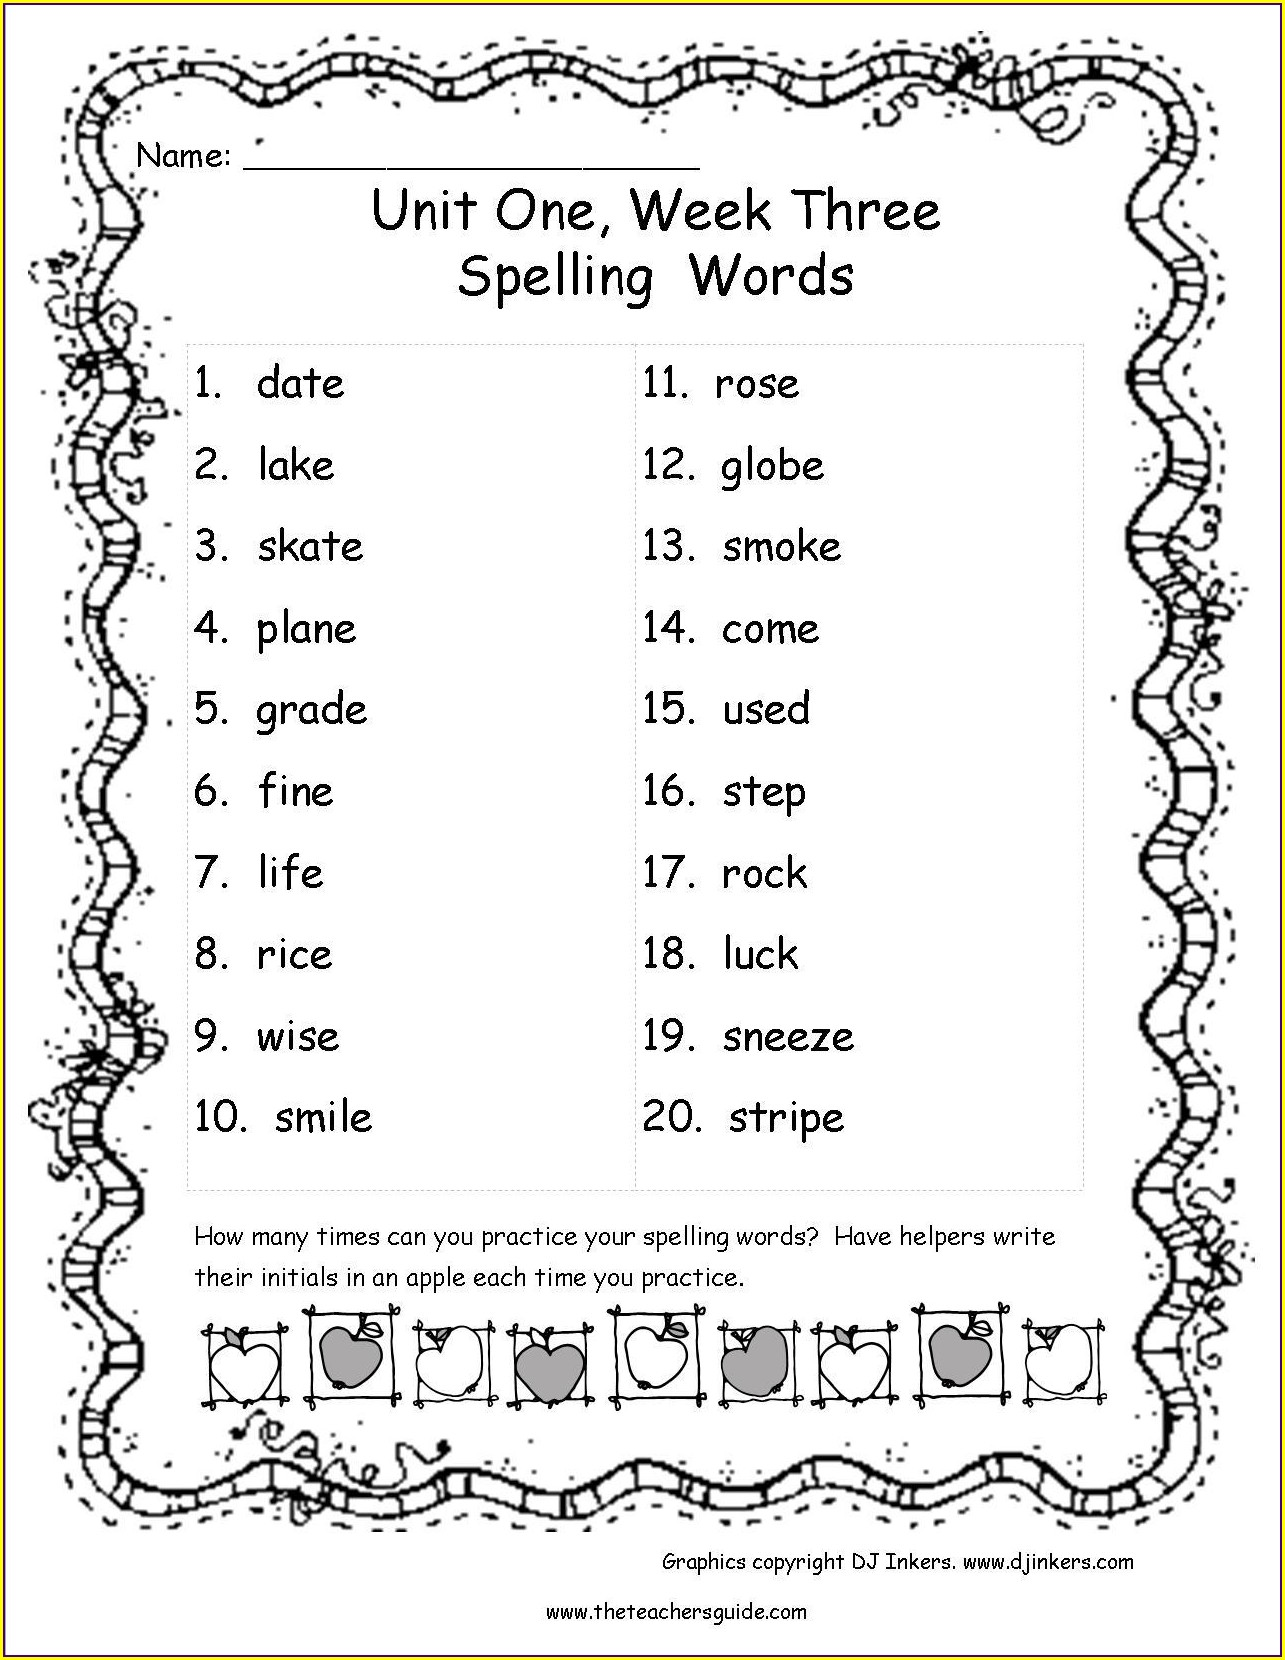 Spelling Worksheets 3rd Grade Spelling List Printable